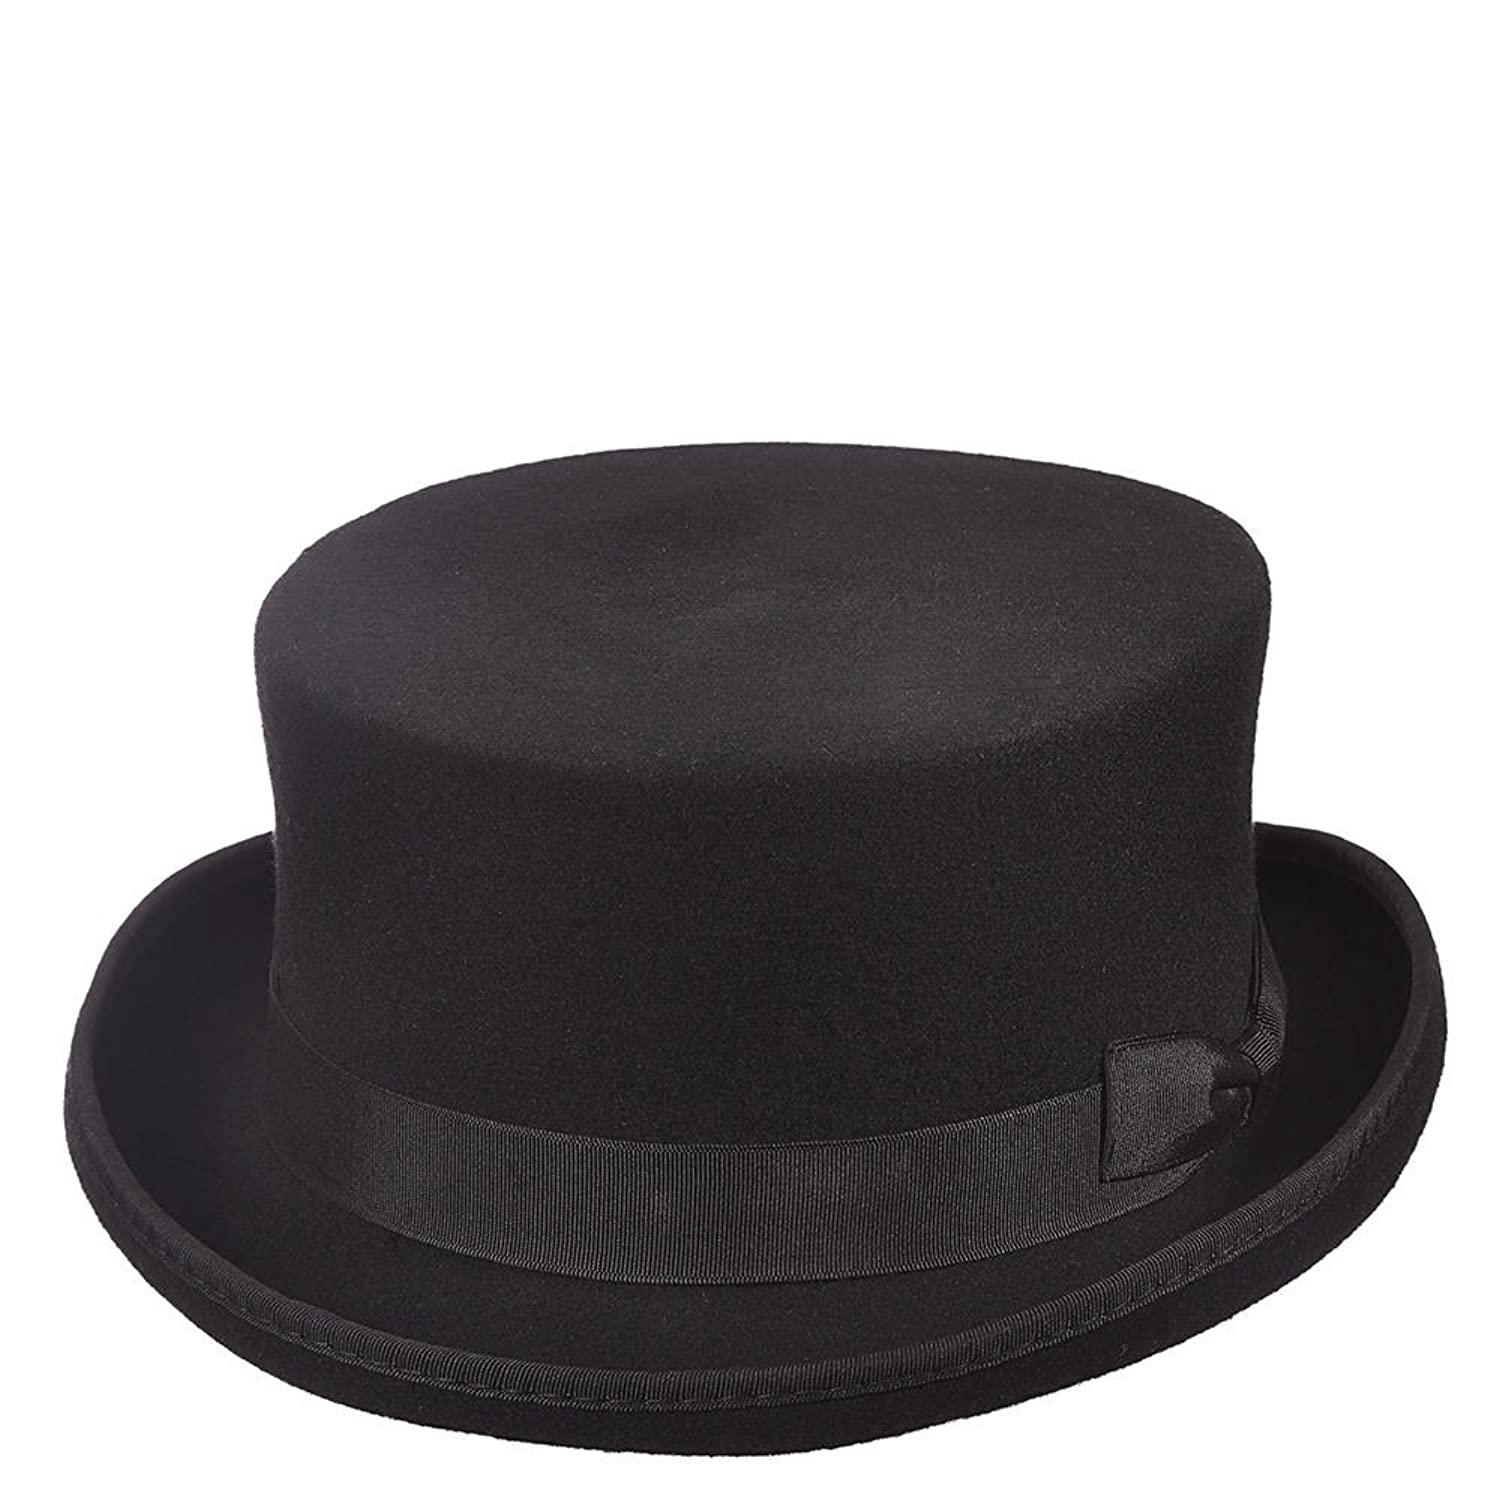 Deluxe Adult Costumes - Men's classic design wool felt Jacob Frye Syndicate short top hat.